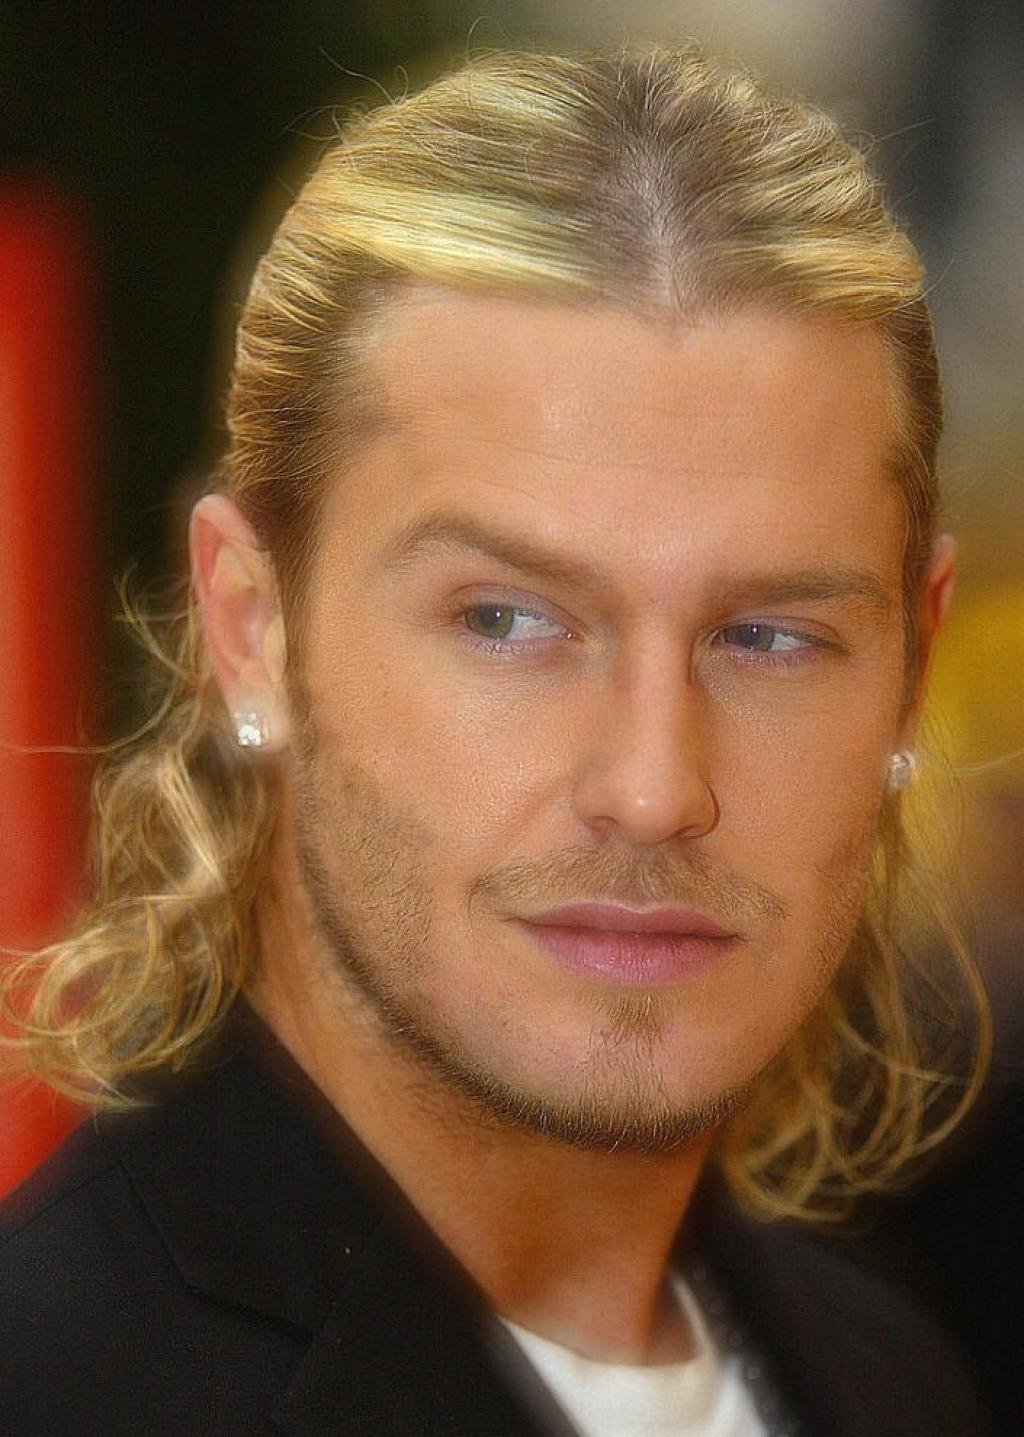 windy hairstyle: david beckham long length hairstyle ideas